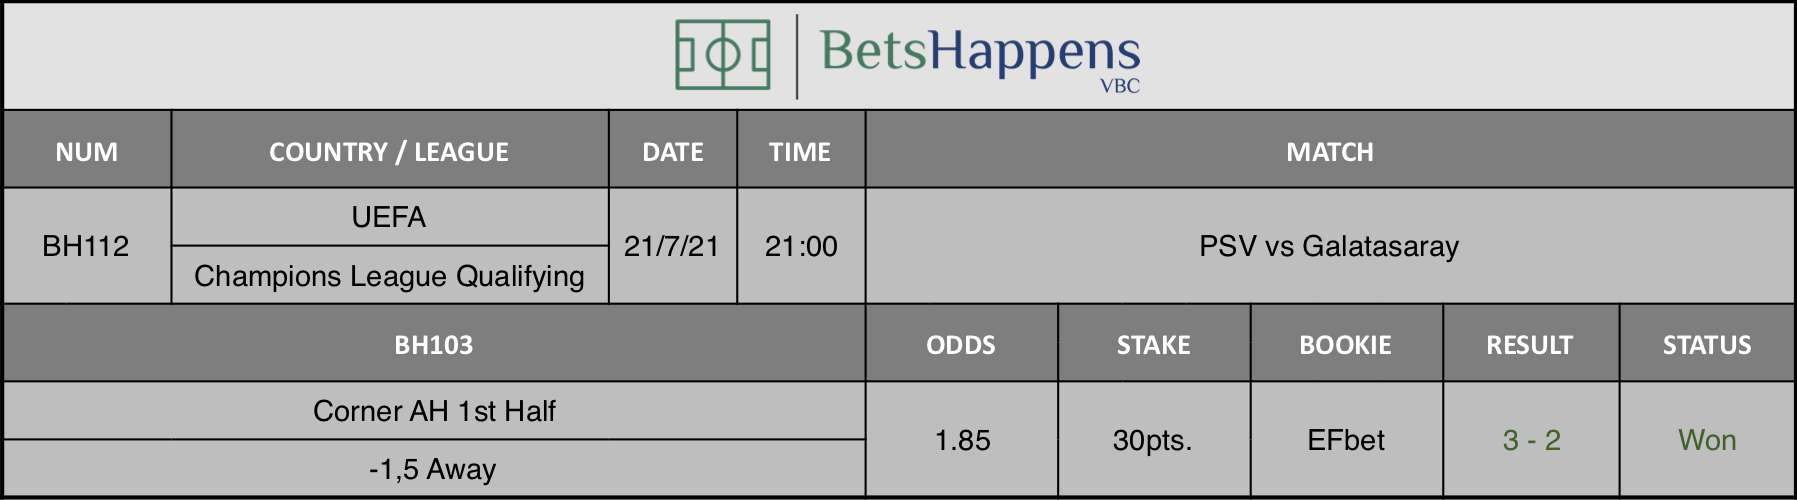 Results of our advice for the PSV vs Galatasaray match in which Corner AH 1st Half -1,5 Away is recommended.